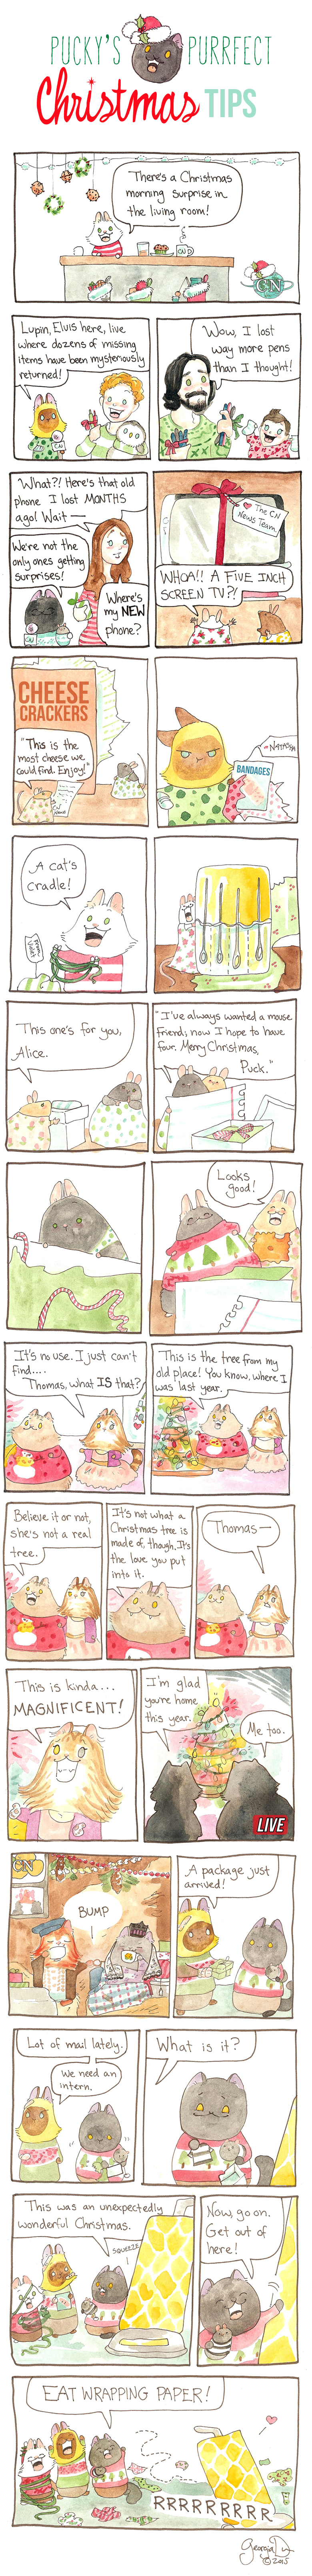 Pucky's Purrfect Christmas Tips Part Seven